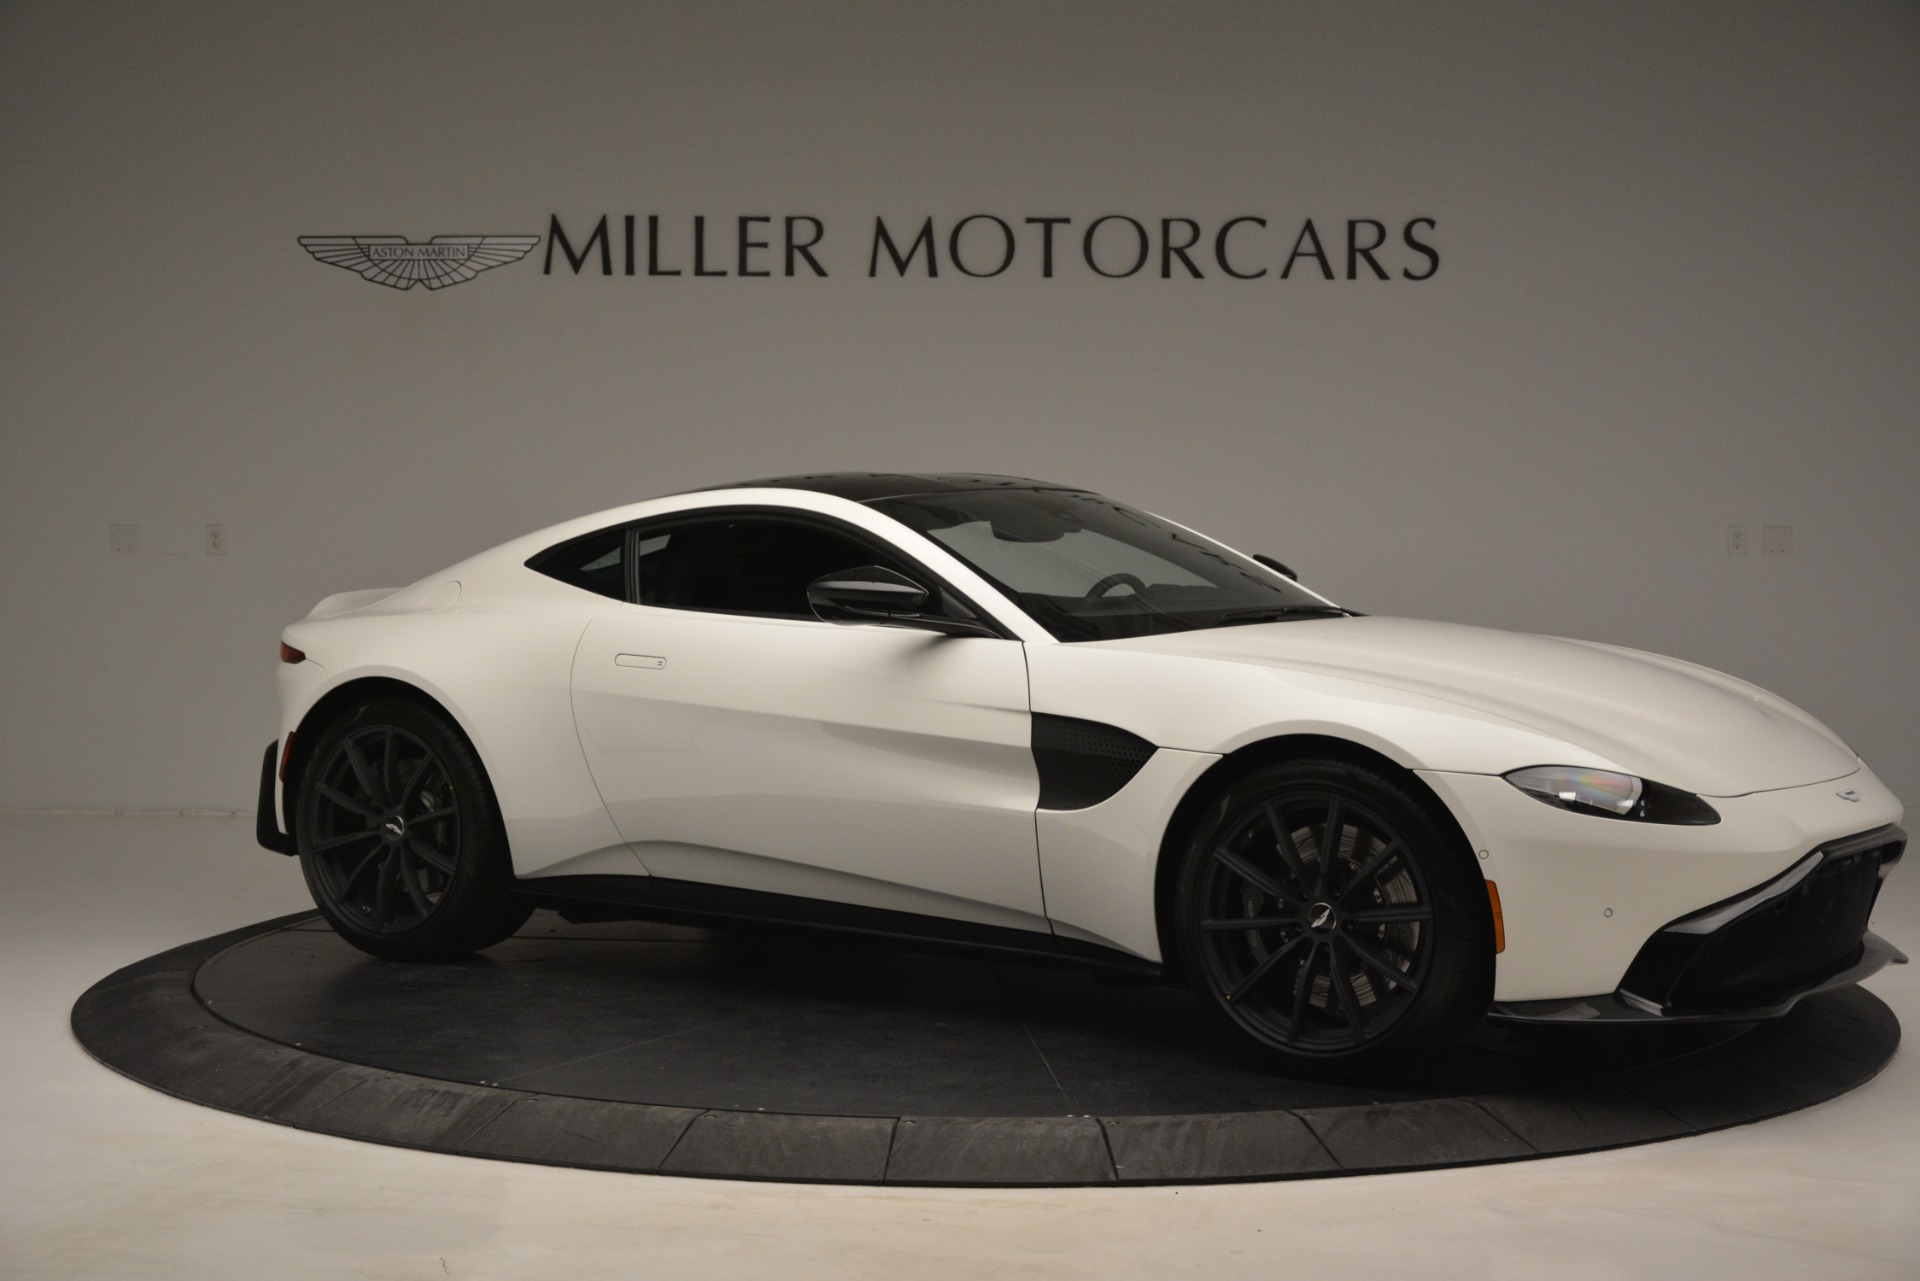 New 2019 Aston Martin Vantage V8 For Sale In Westport, CT 3053_p10